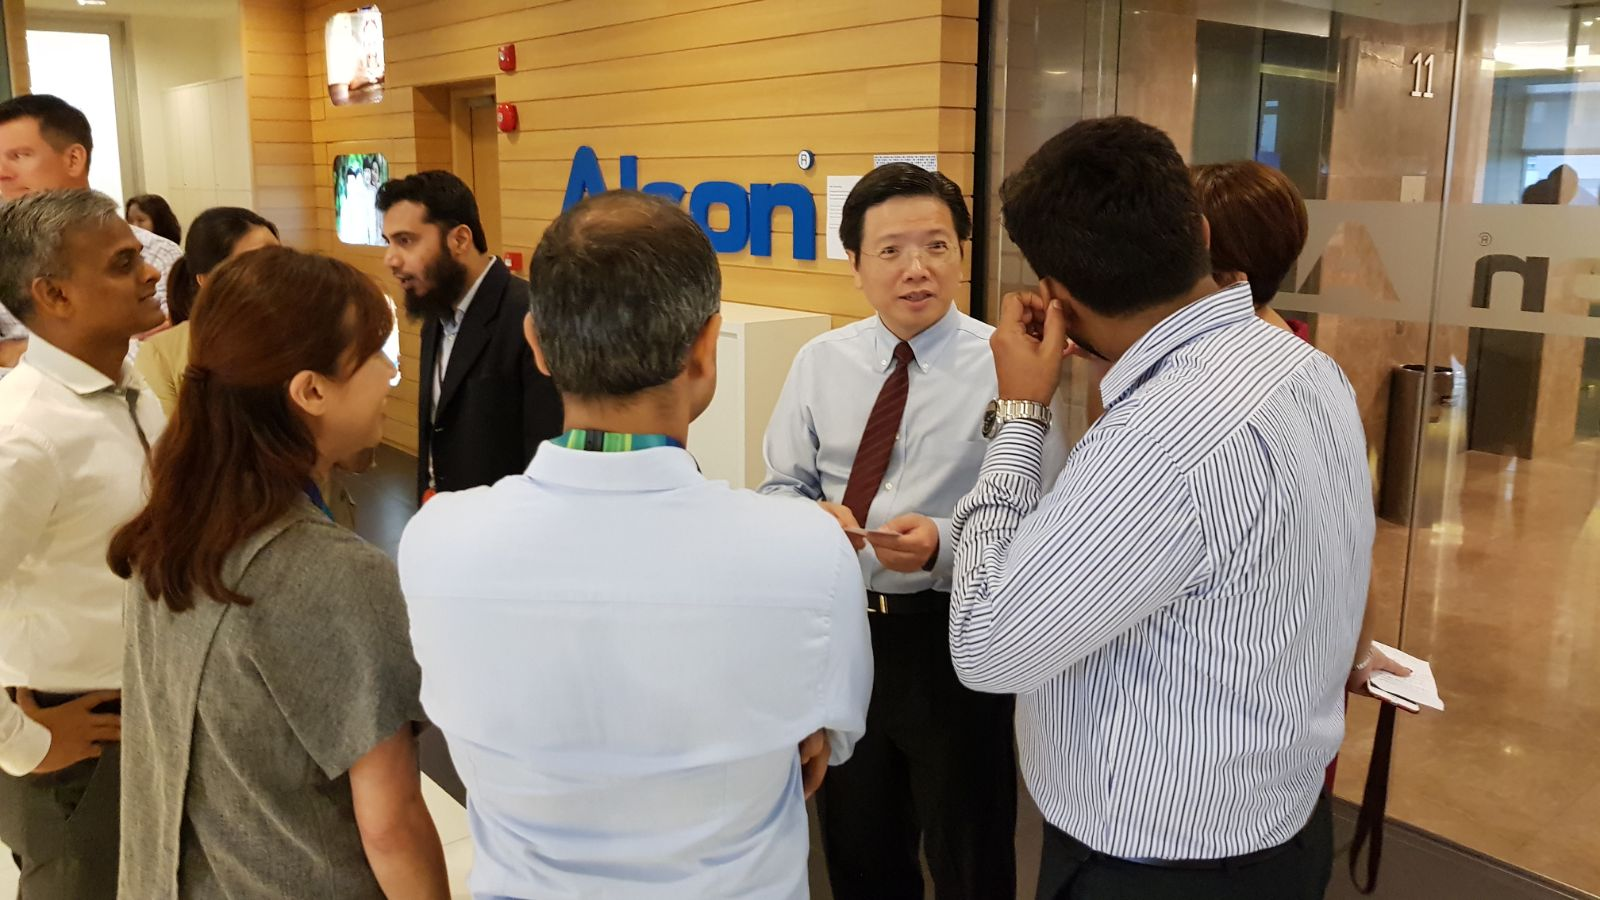 Dr Au Eong Kah Guan mingling with and answering questions from staff of Novartis (Singapore) Pte Ltd after his lecture on World Sight Day on 12 October 2017 in Mapletree Business City.